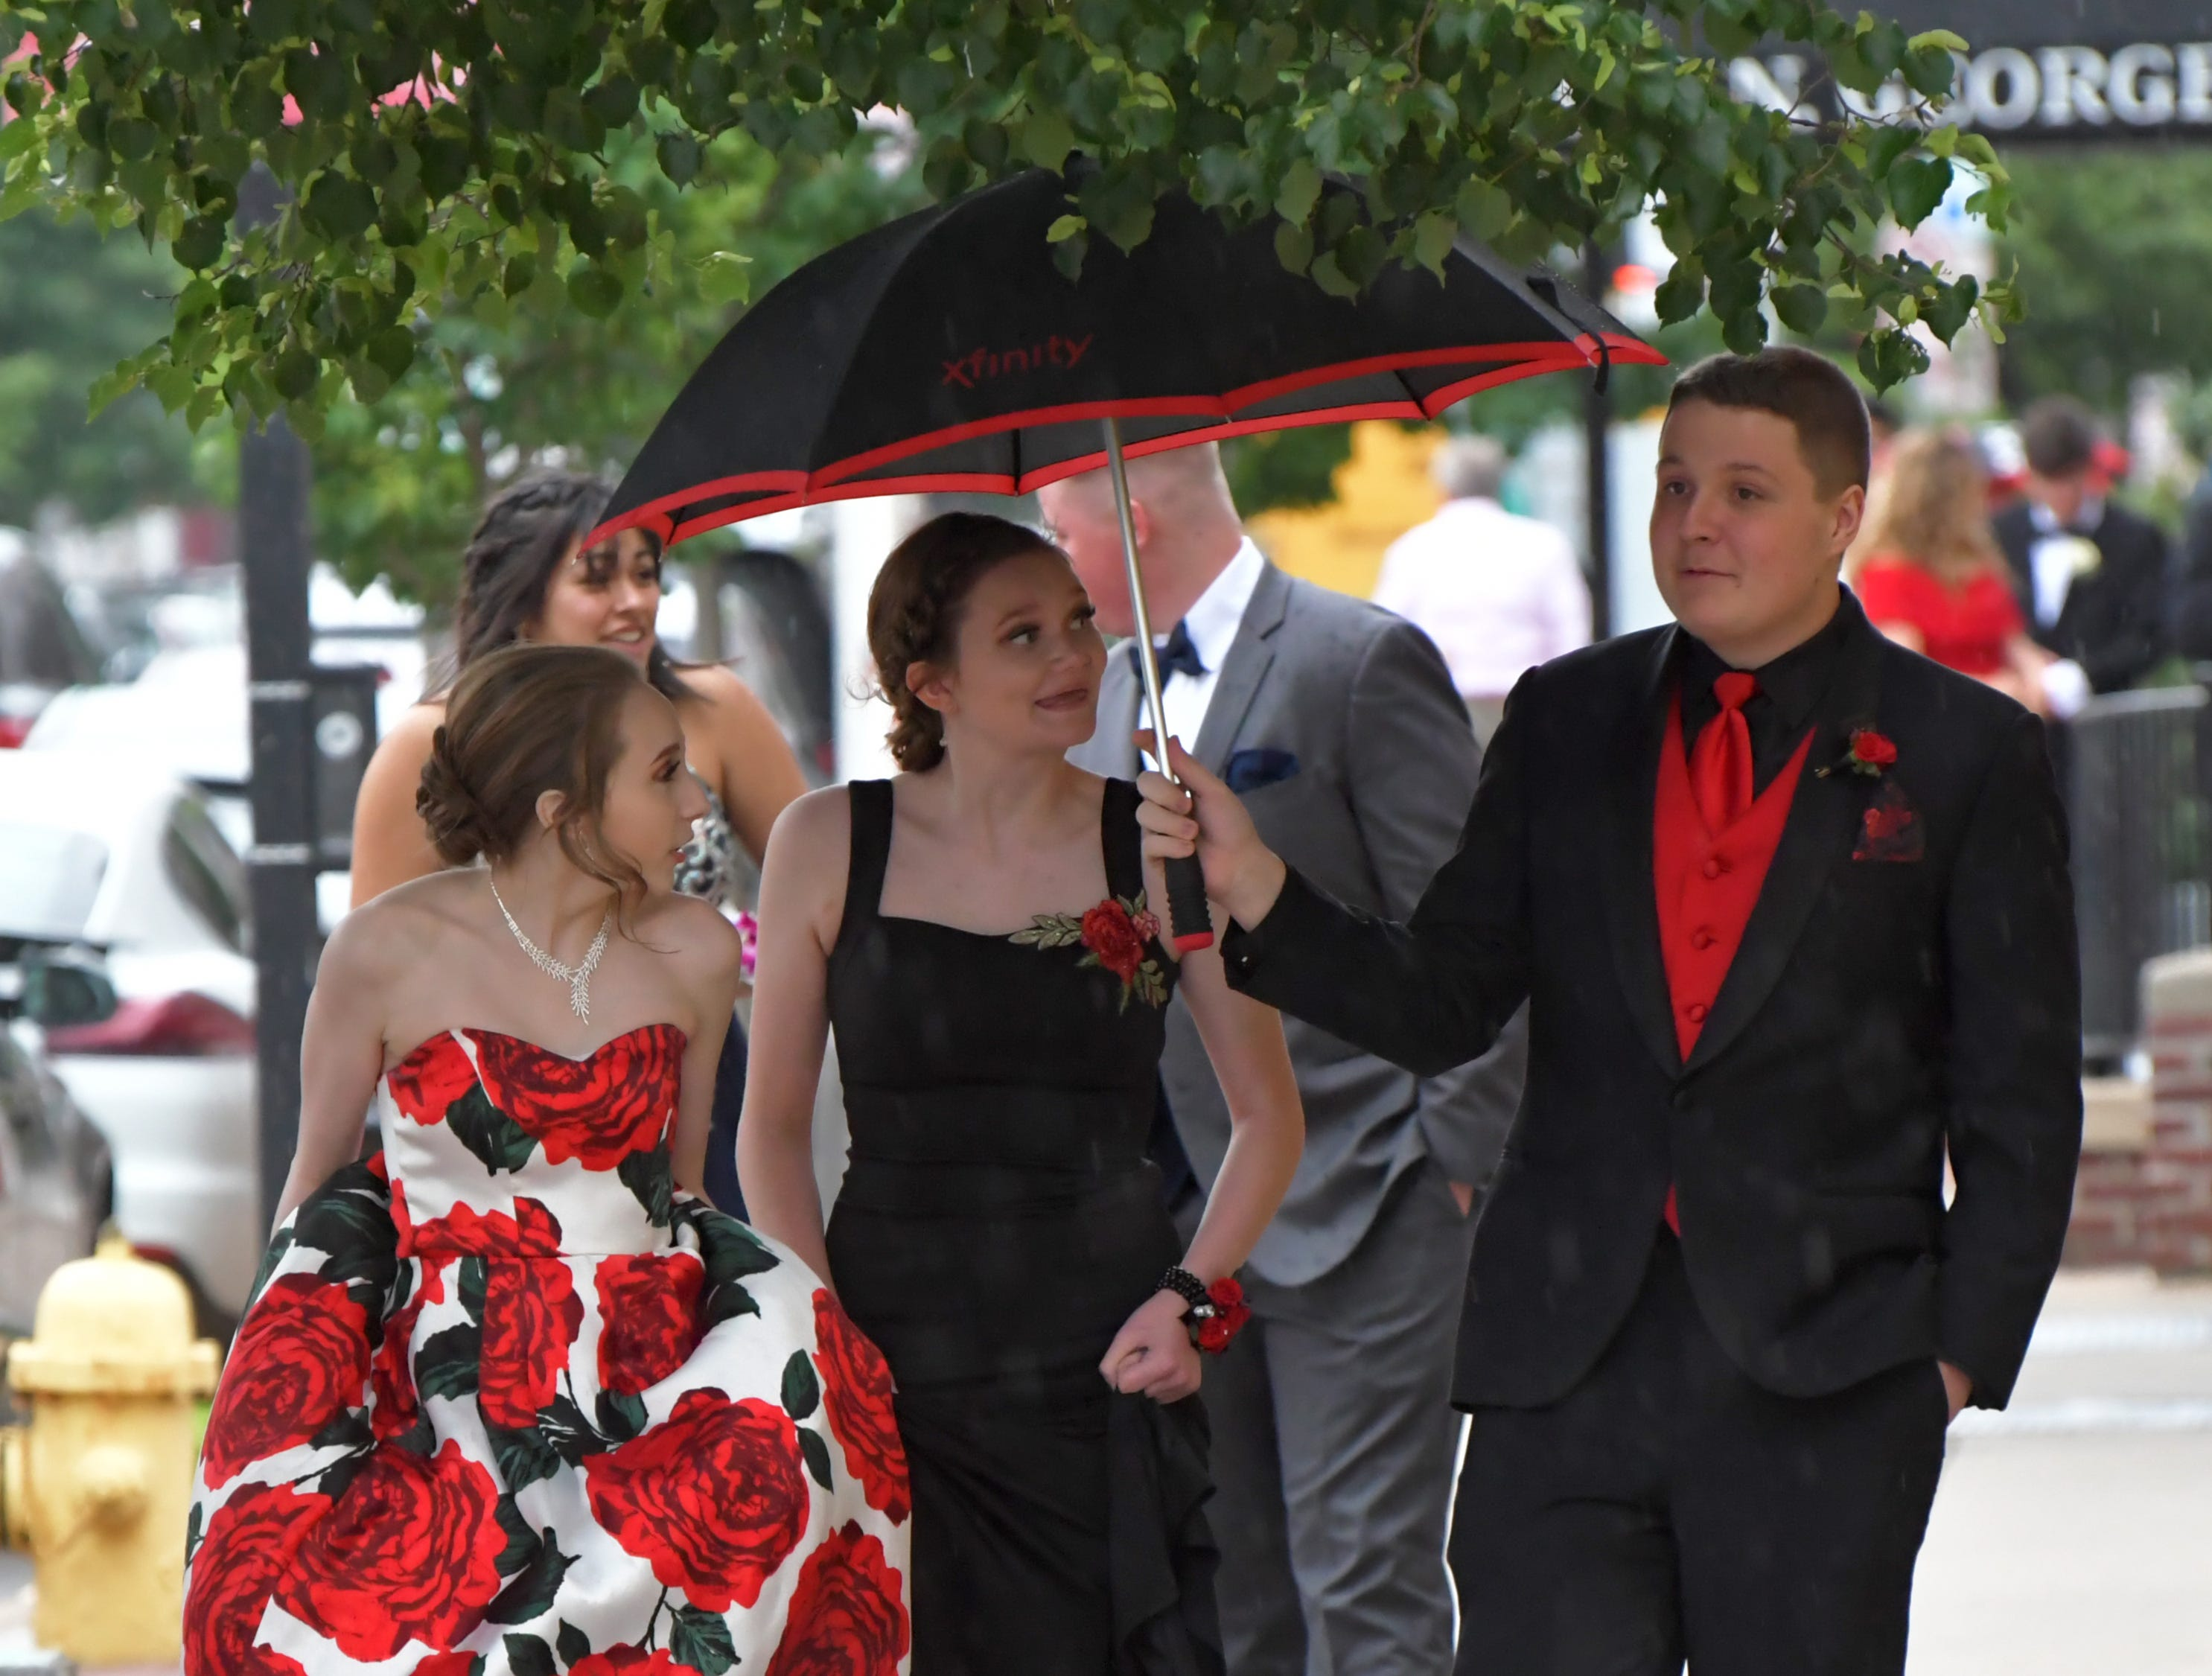 On the way to their school's, York Suburban, prom are, from left: Lea Youngman, Adrianna Pinto, and Kevin Kumler. The prom was held at the Valenica in York City on Saturday, May 11, 2019. Randy Flaum photo